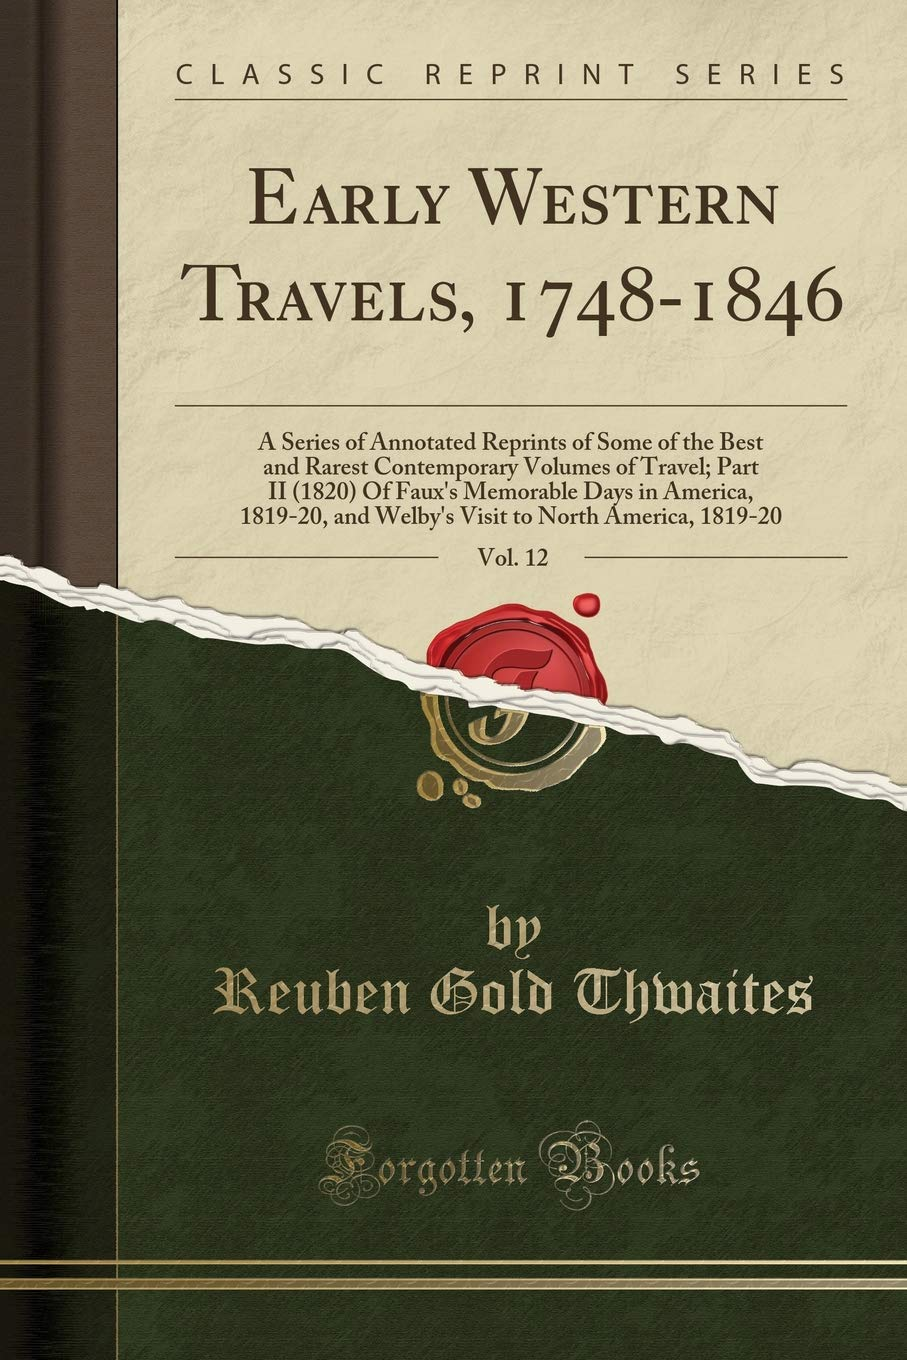 Early Western Travels, 1748-1846, Vol. 12: A Series of Annotated Reprints of Some of the Best and Rarest Contemporary Volumes of Travel; Part II ... and Welby's Visit to North America, 1819-20 pdf epub